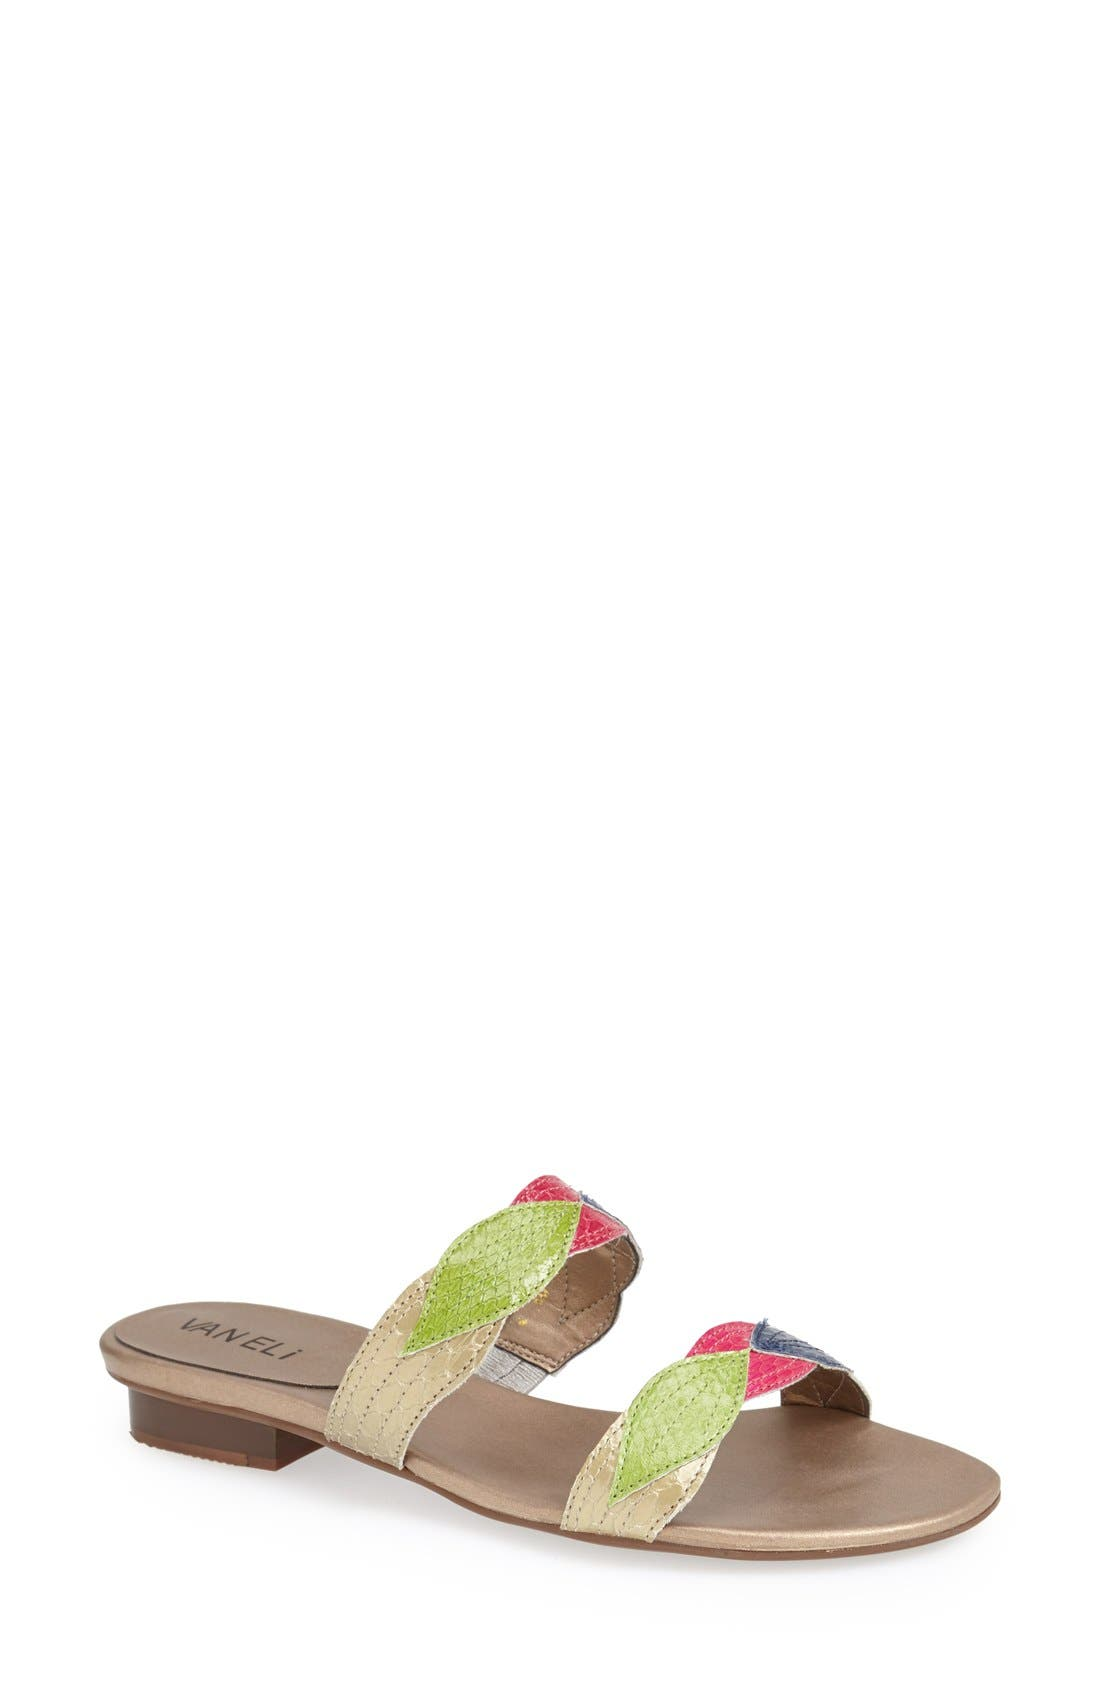 Main Image - VANELi 'Blim' Slide Sandal (Women) (Special Purchase)